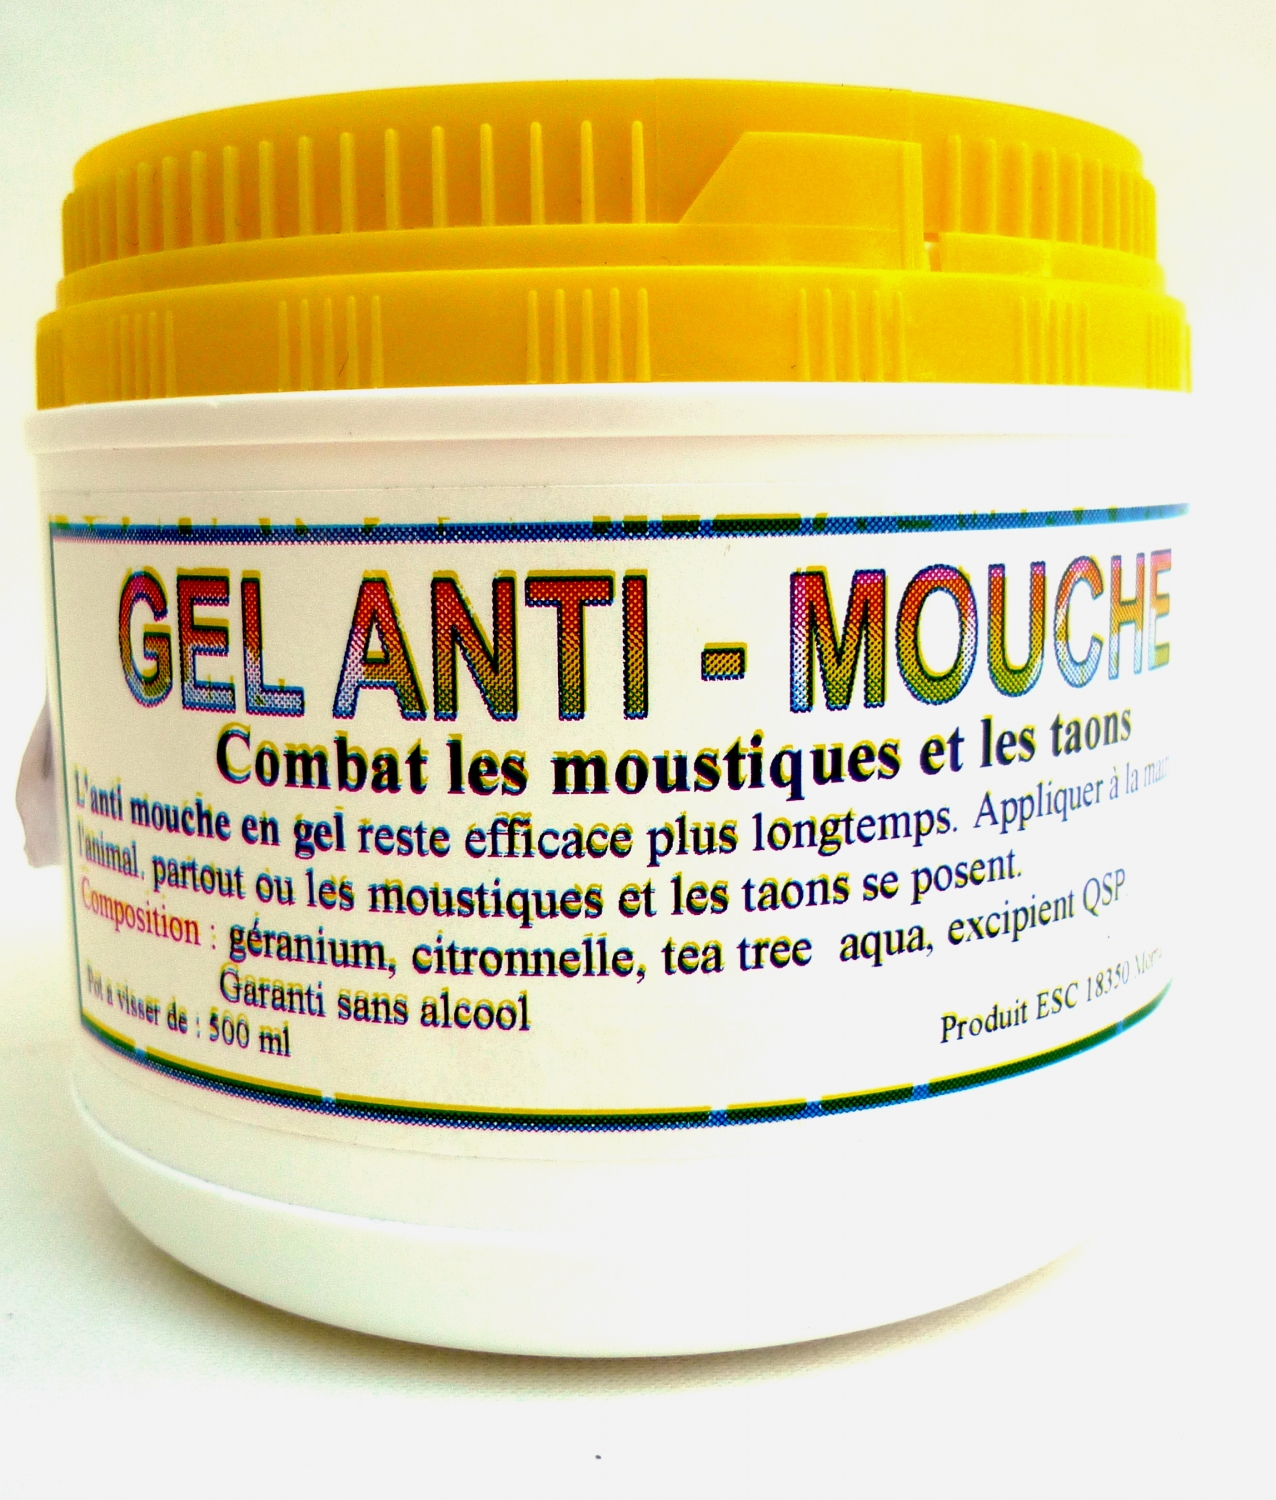 gel anti mouche 500ml gel000001 cheval paradis site officiel. Black Bedroom Furniture Sets. Home Design Ideas